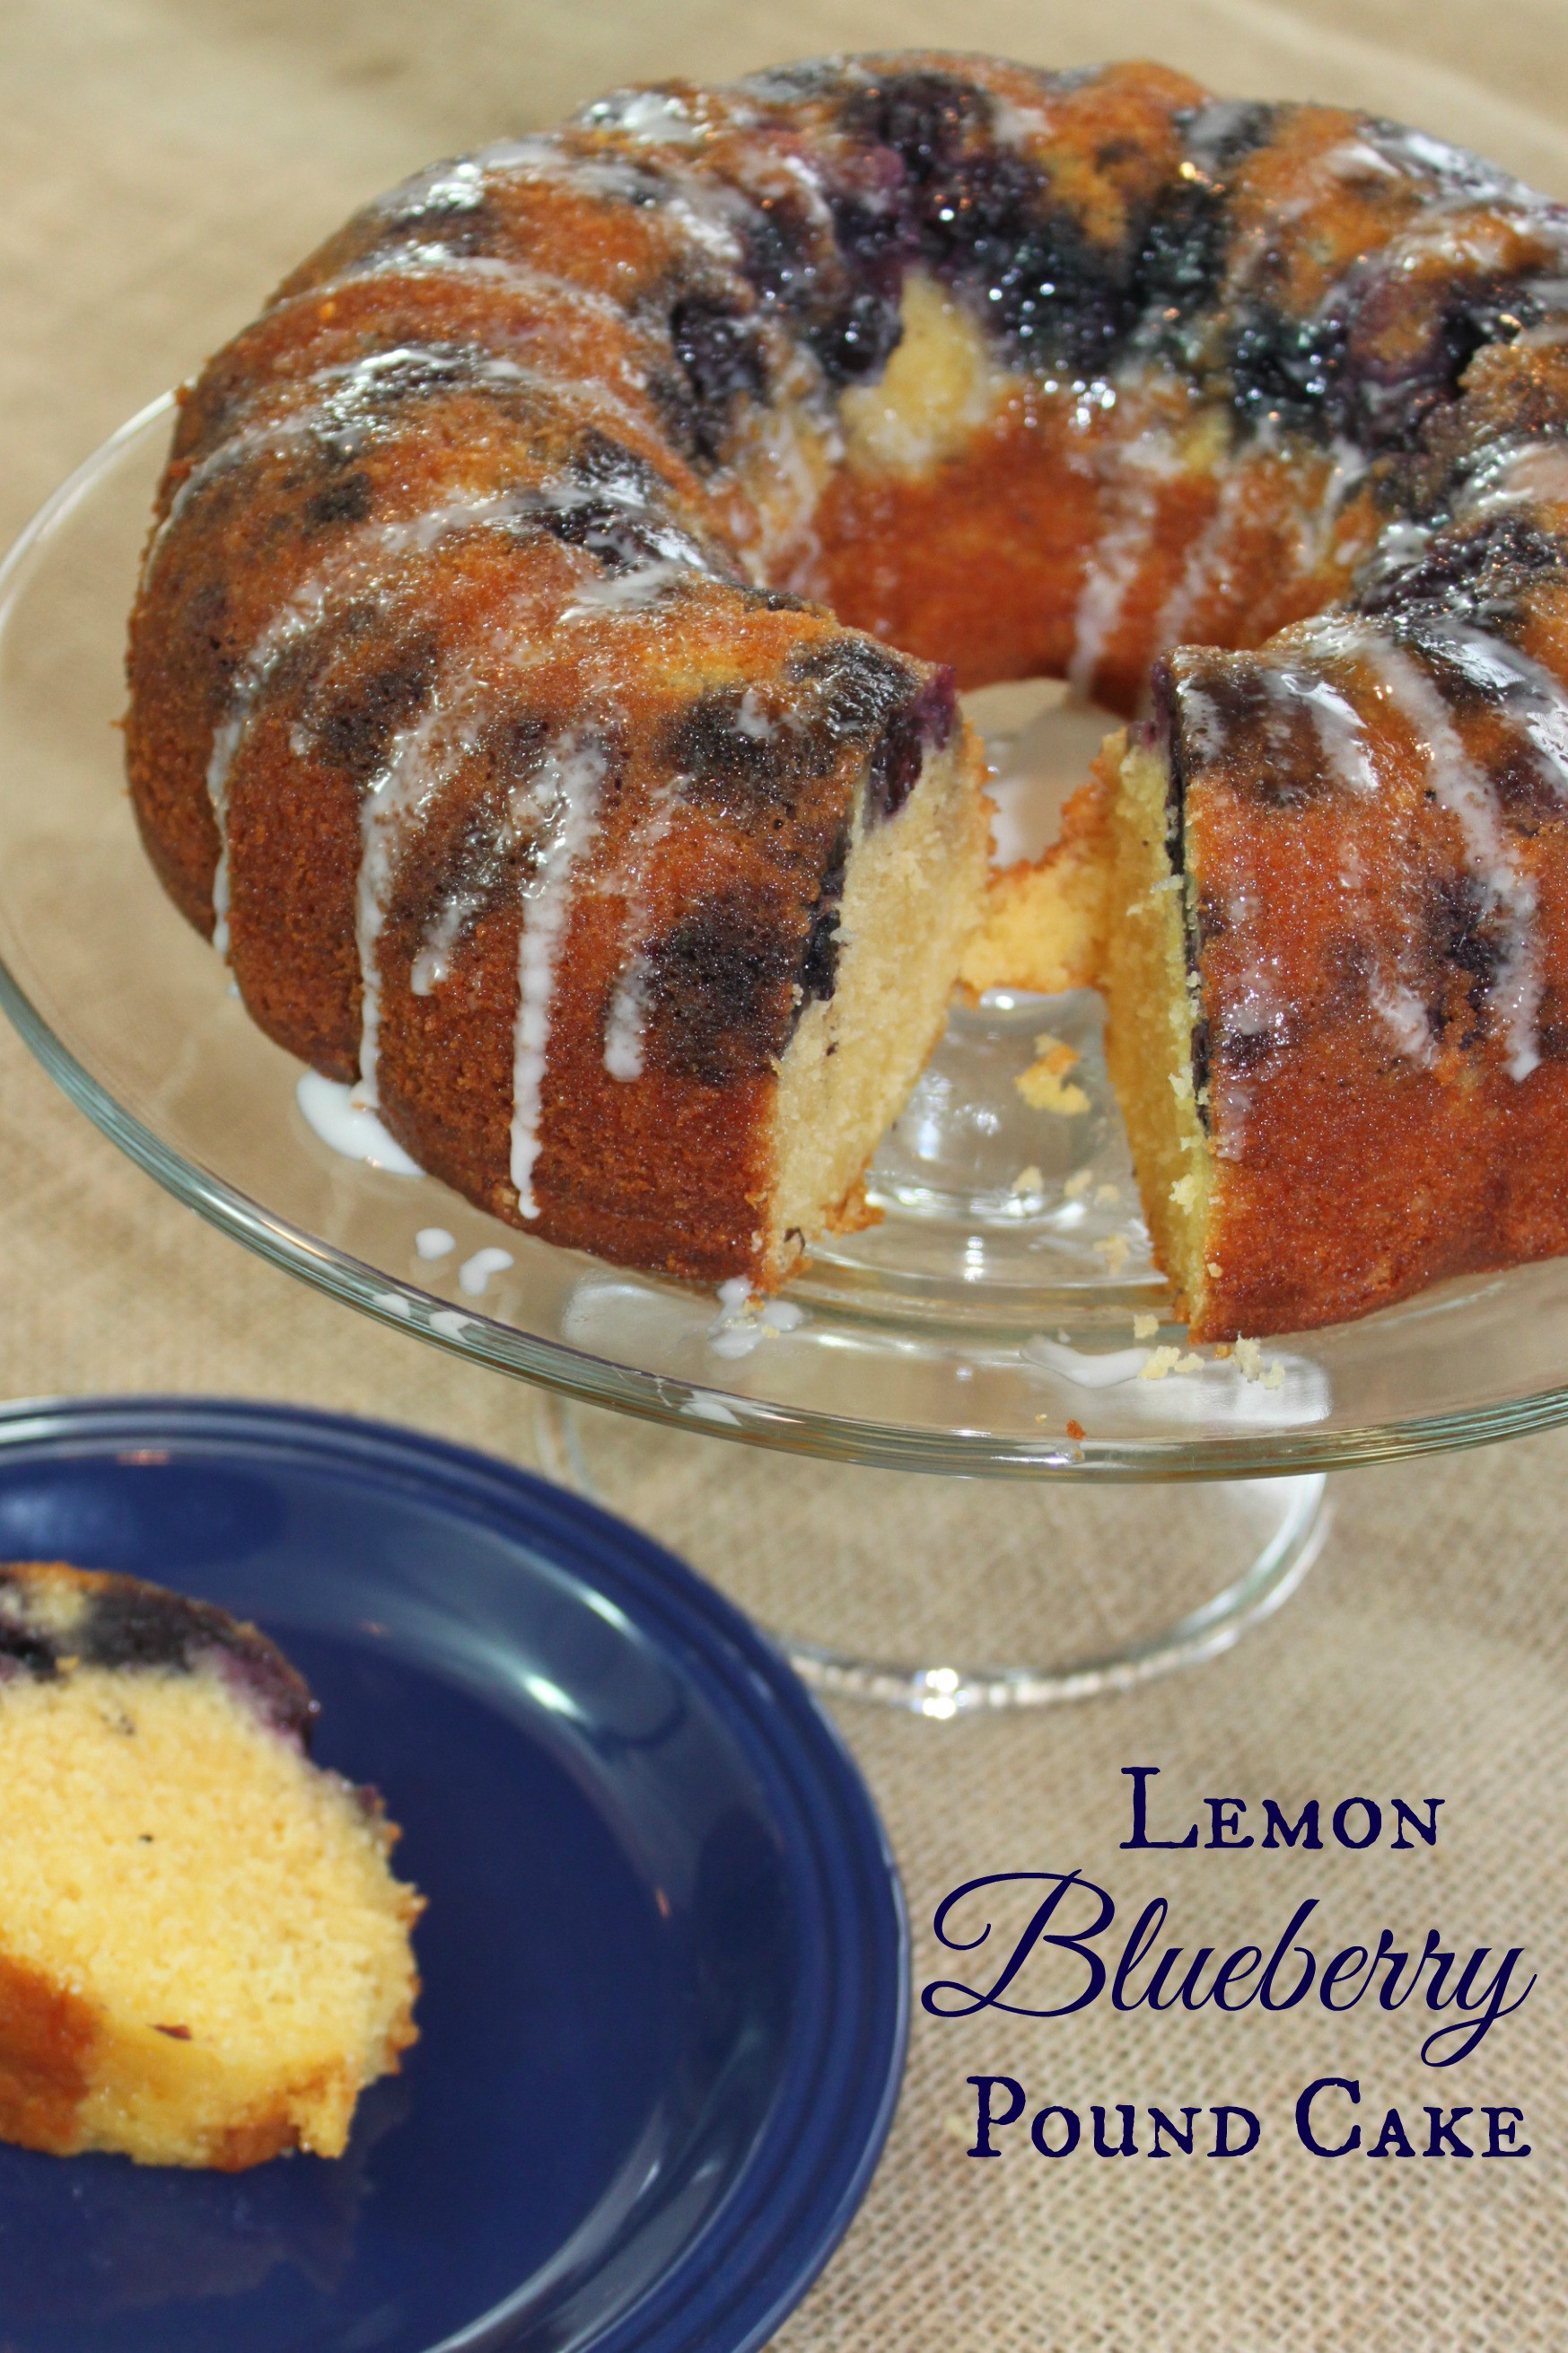 Blueberry Pound Cake  lemon blueberry pound cake foo extravaganza